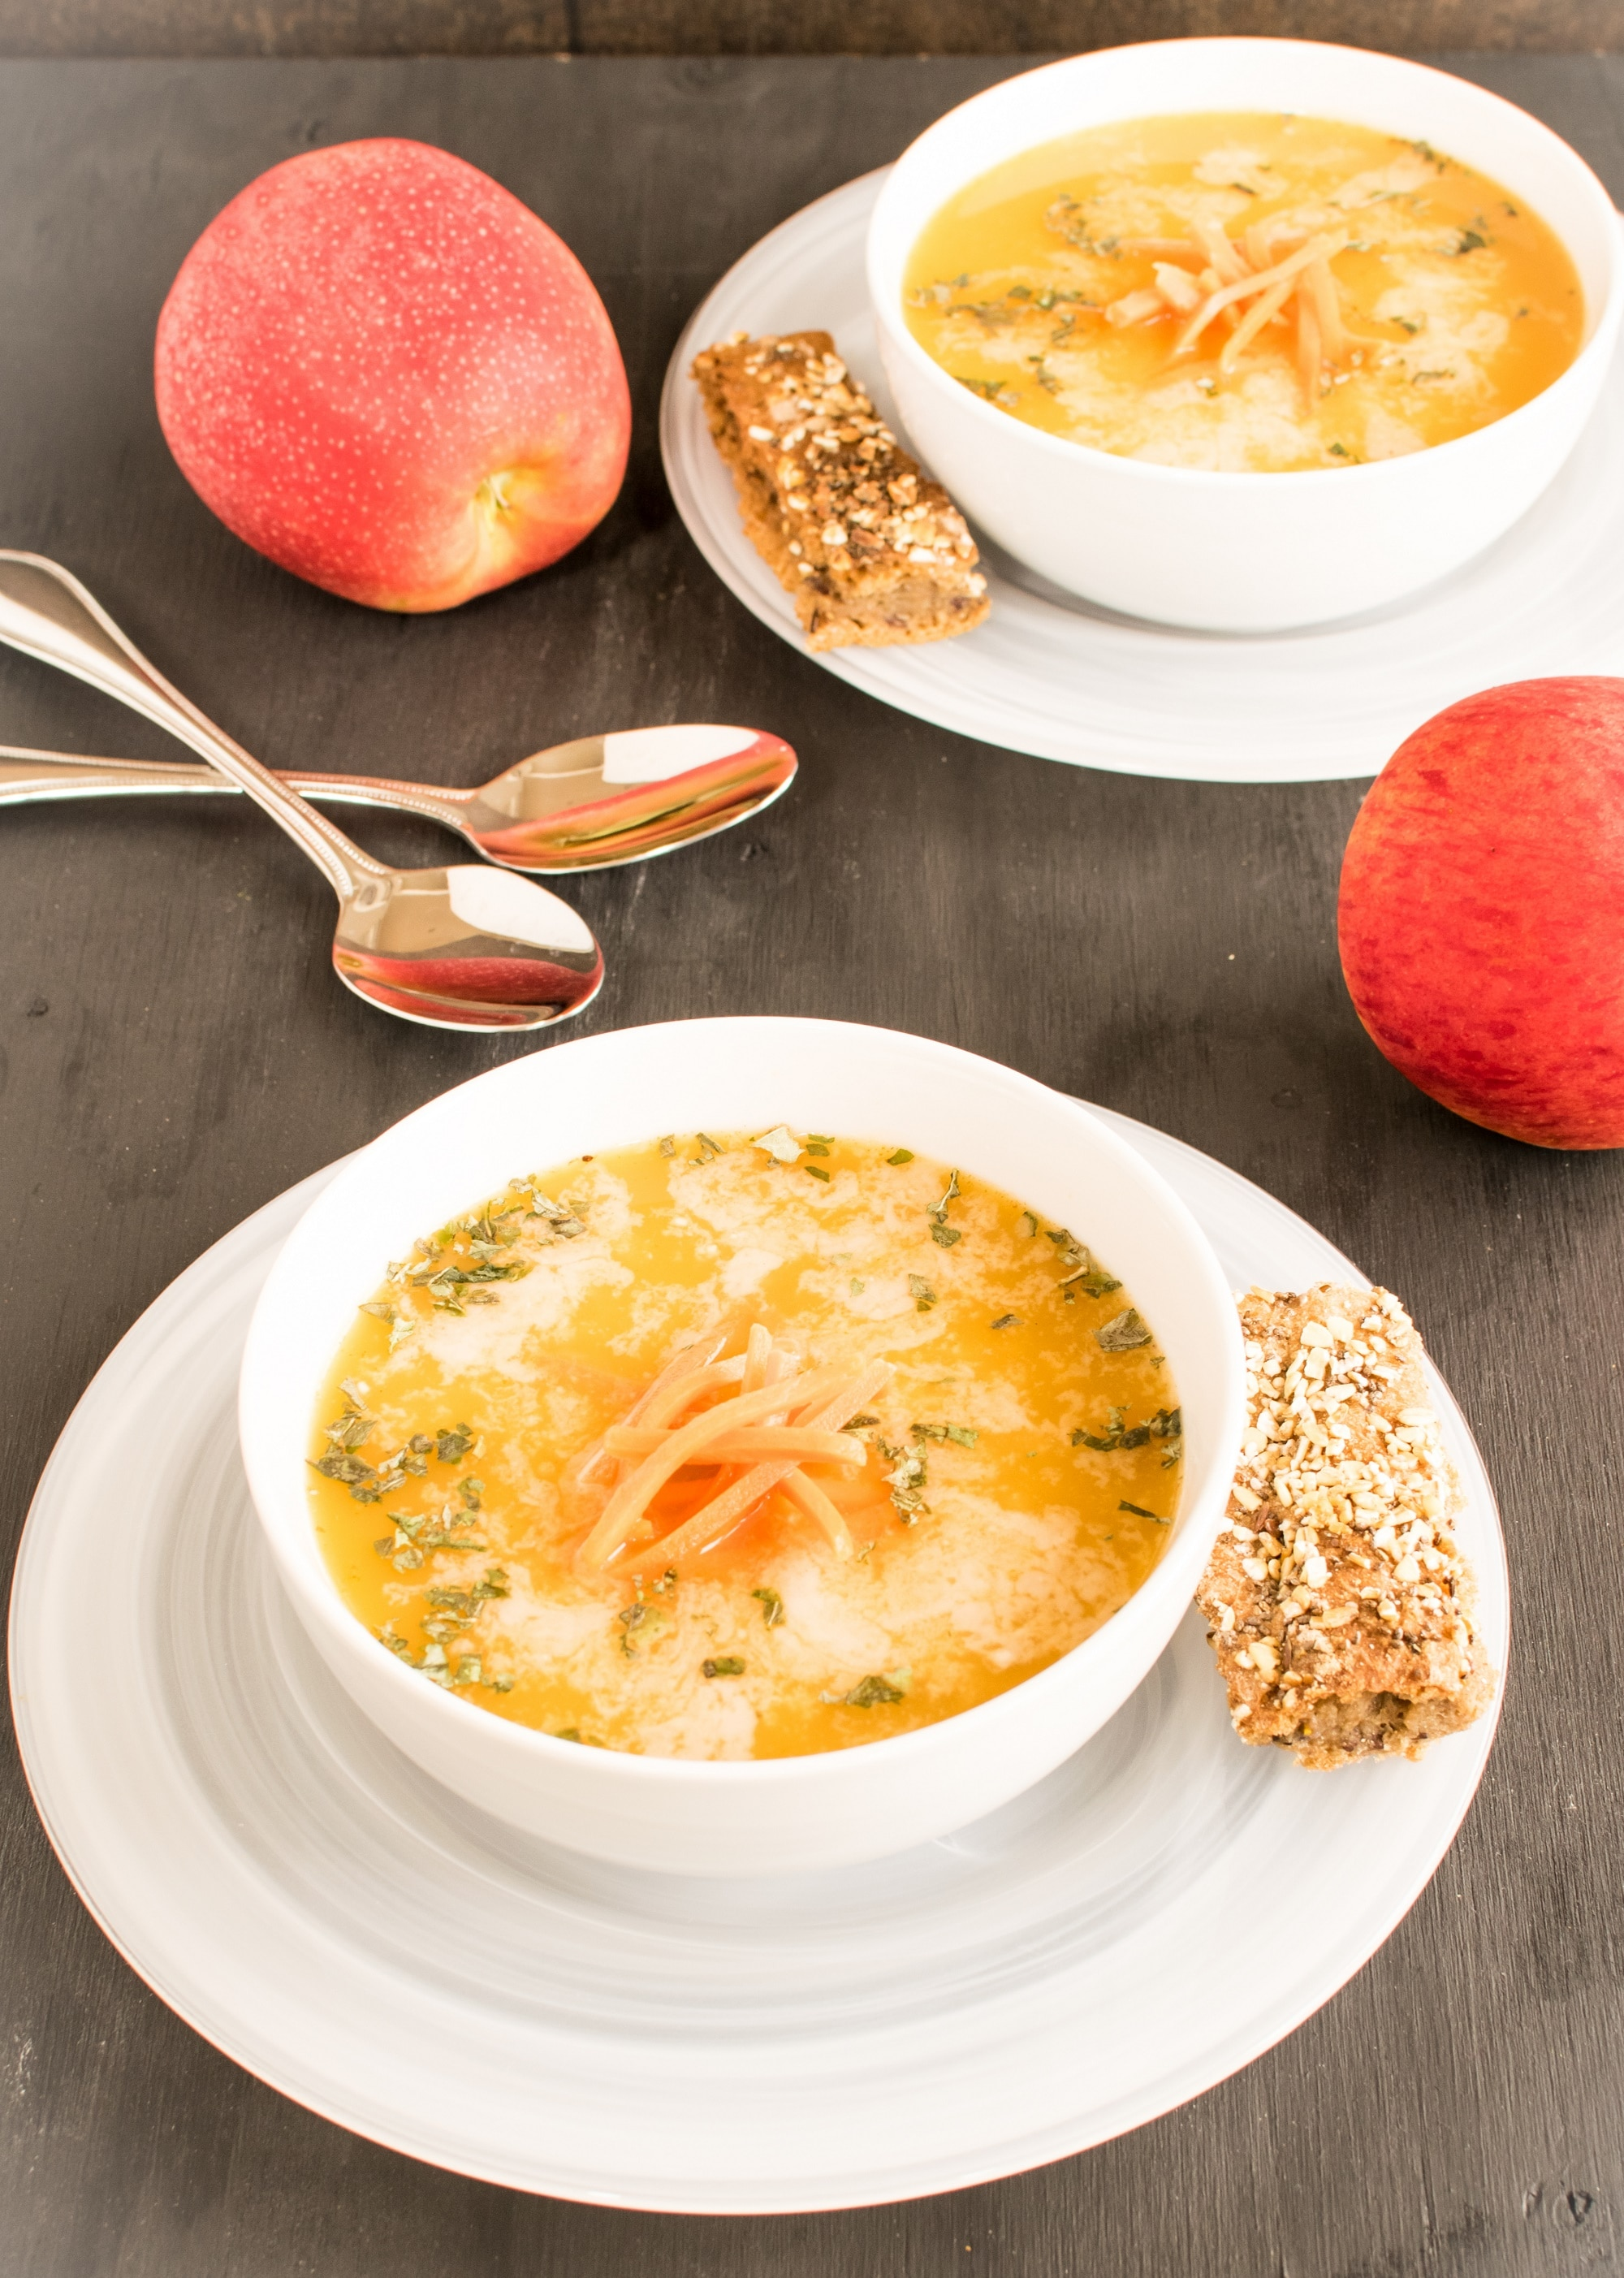 Spiced Apple Carrot Soup | vegan paleo meal with so much flavor and deliciousness to keep you satisfied and healthy | kiipfit.com